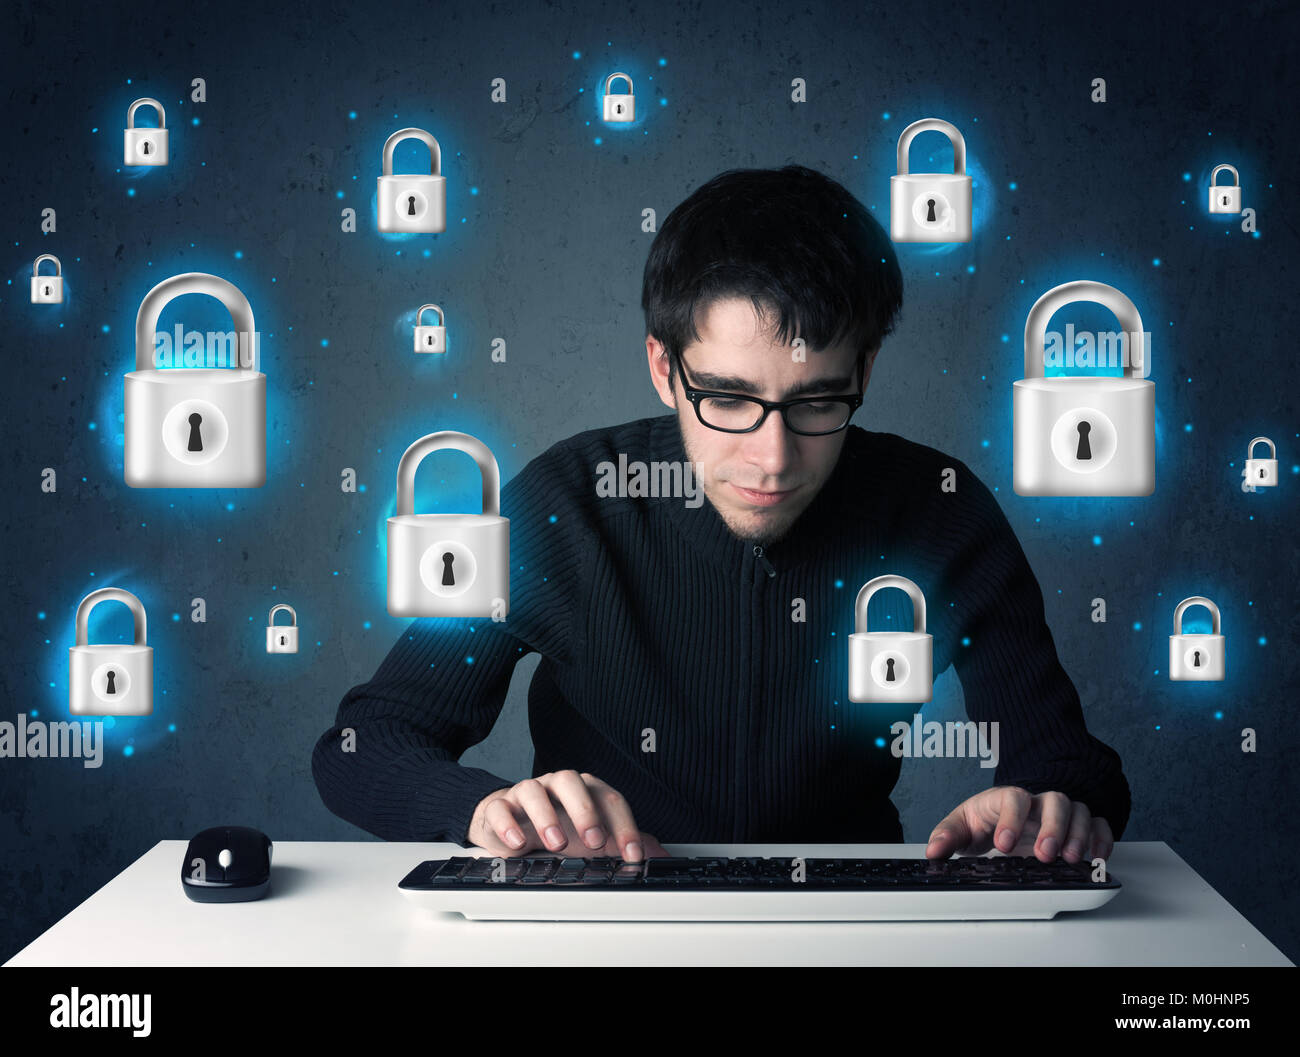 Young hacker with virtual lock symbols and icons on blue background Stock Photo